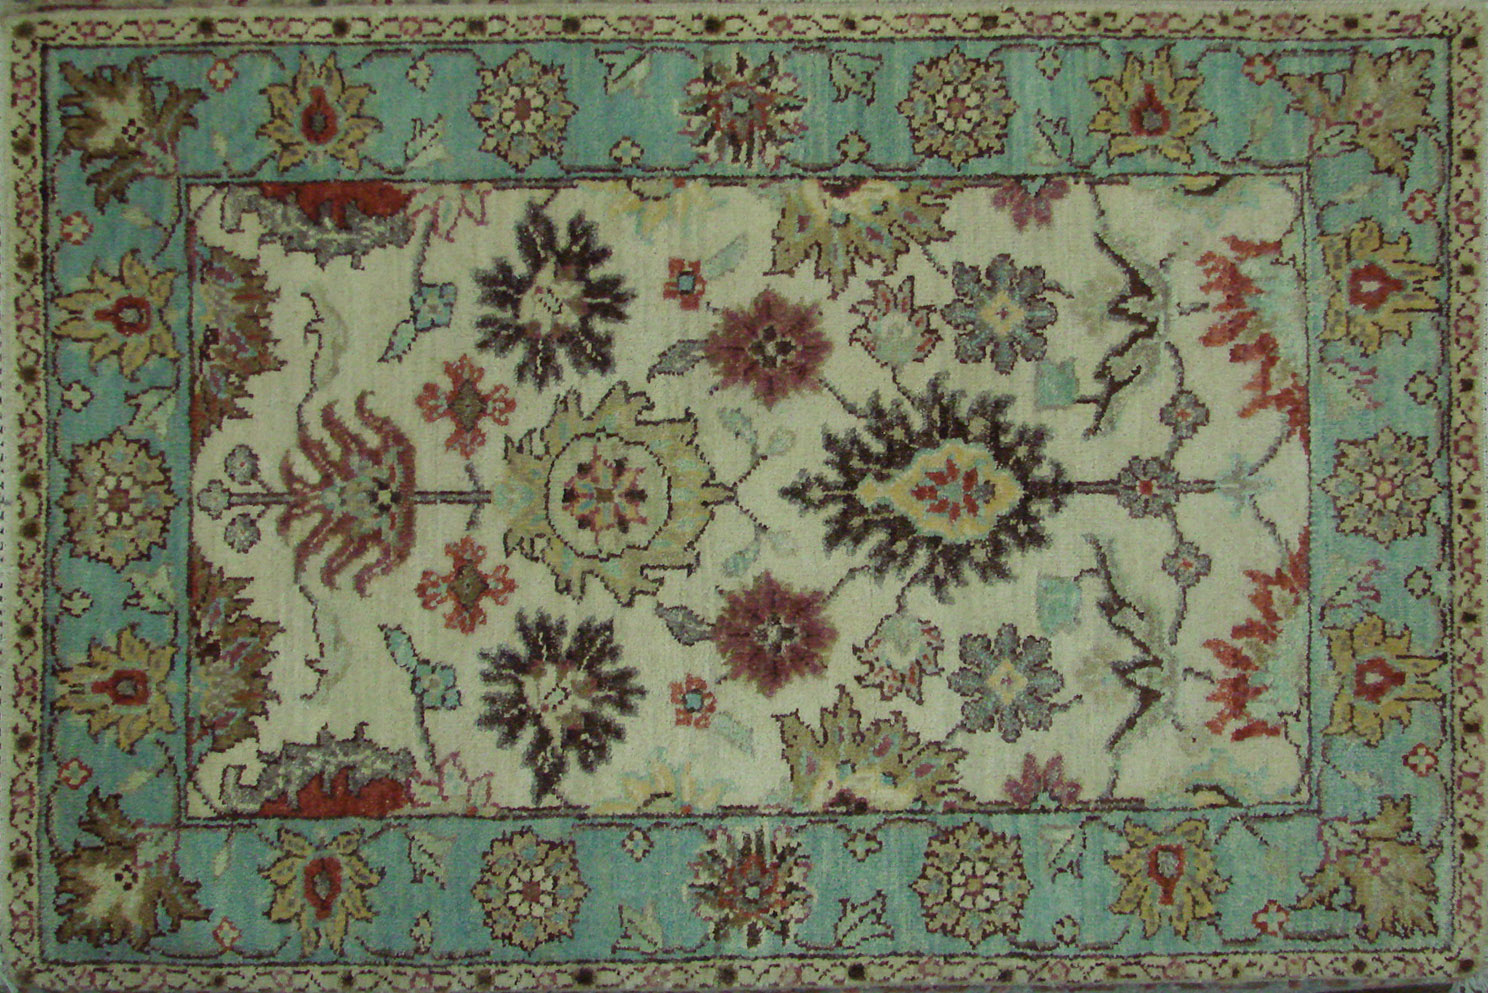 2X3 Traditional Hand Knotted Wool Area Rug - MR021734